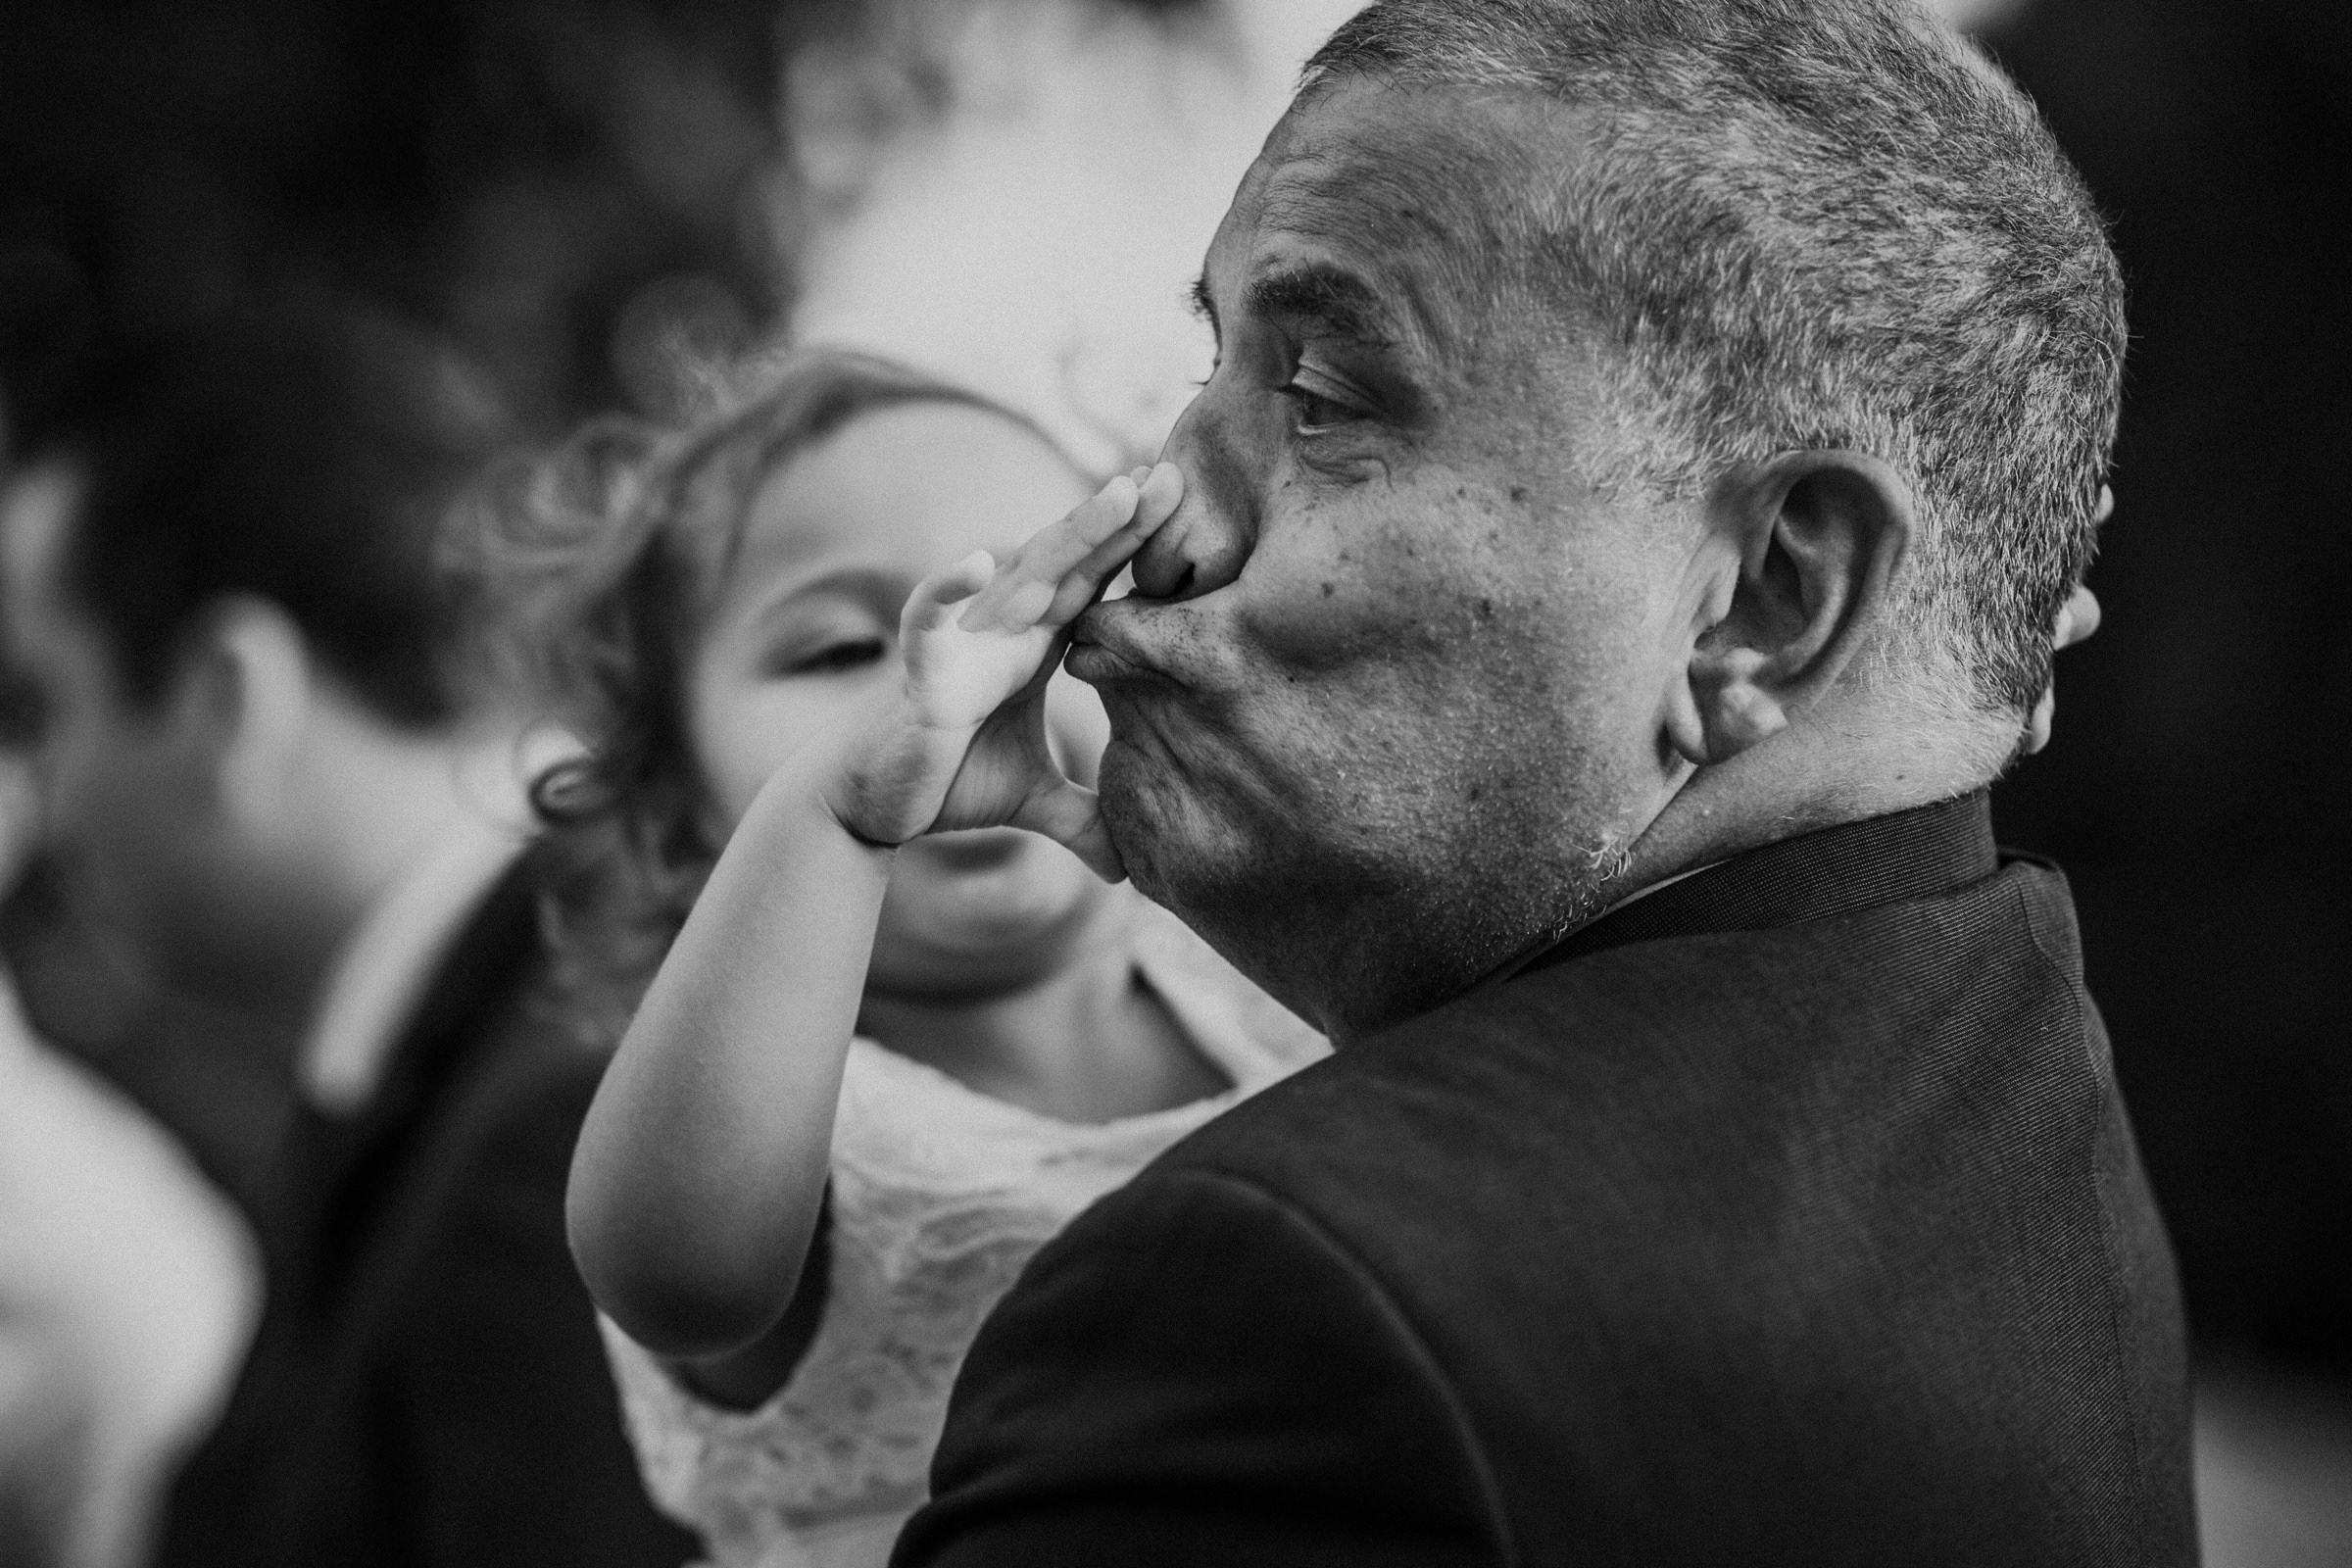 Funny face from man holding little girl - photo by Tomas Juskaitis Photography